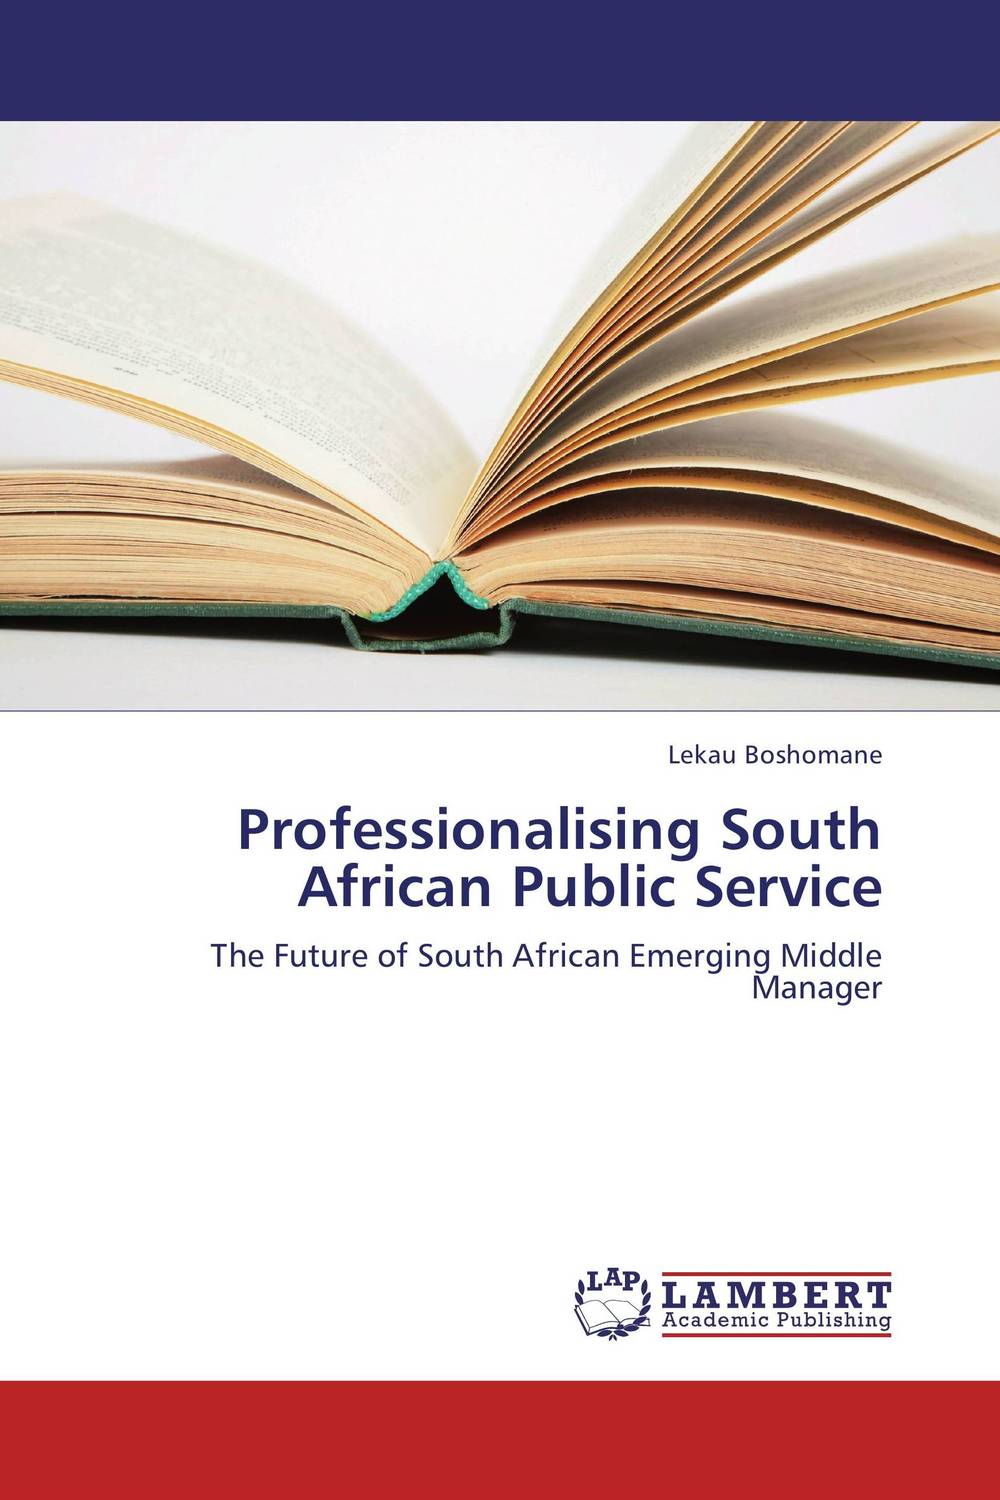 Professionalising South African Public Service elaine biech training and development for dummies